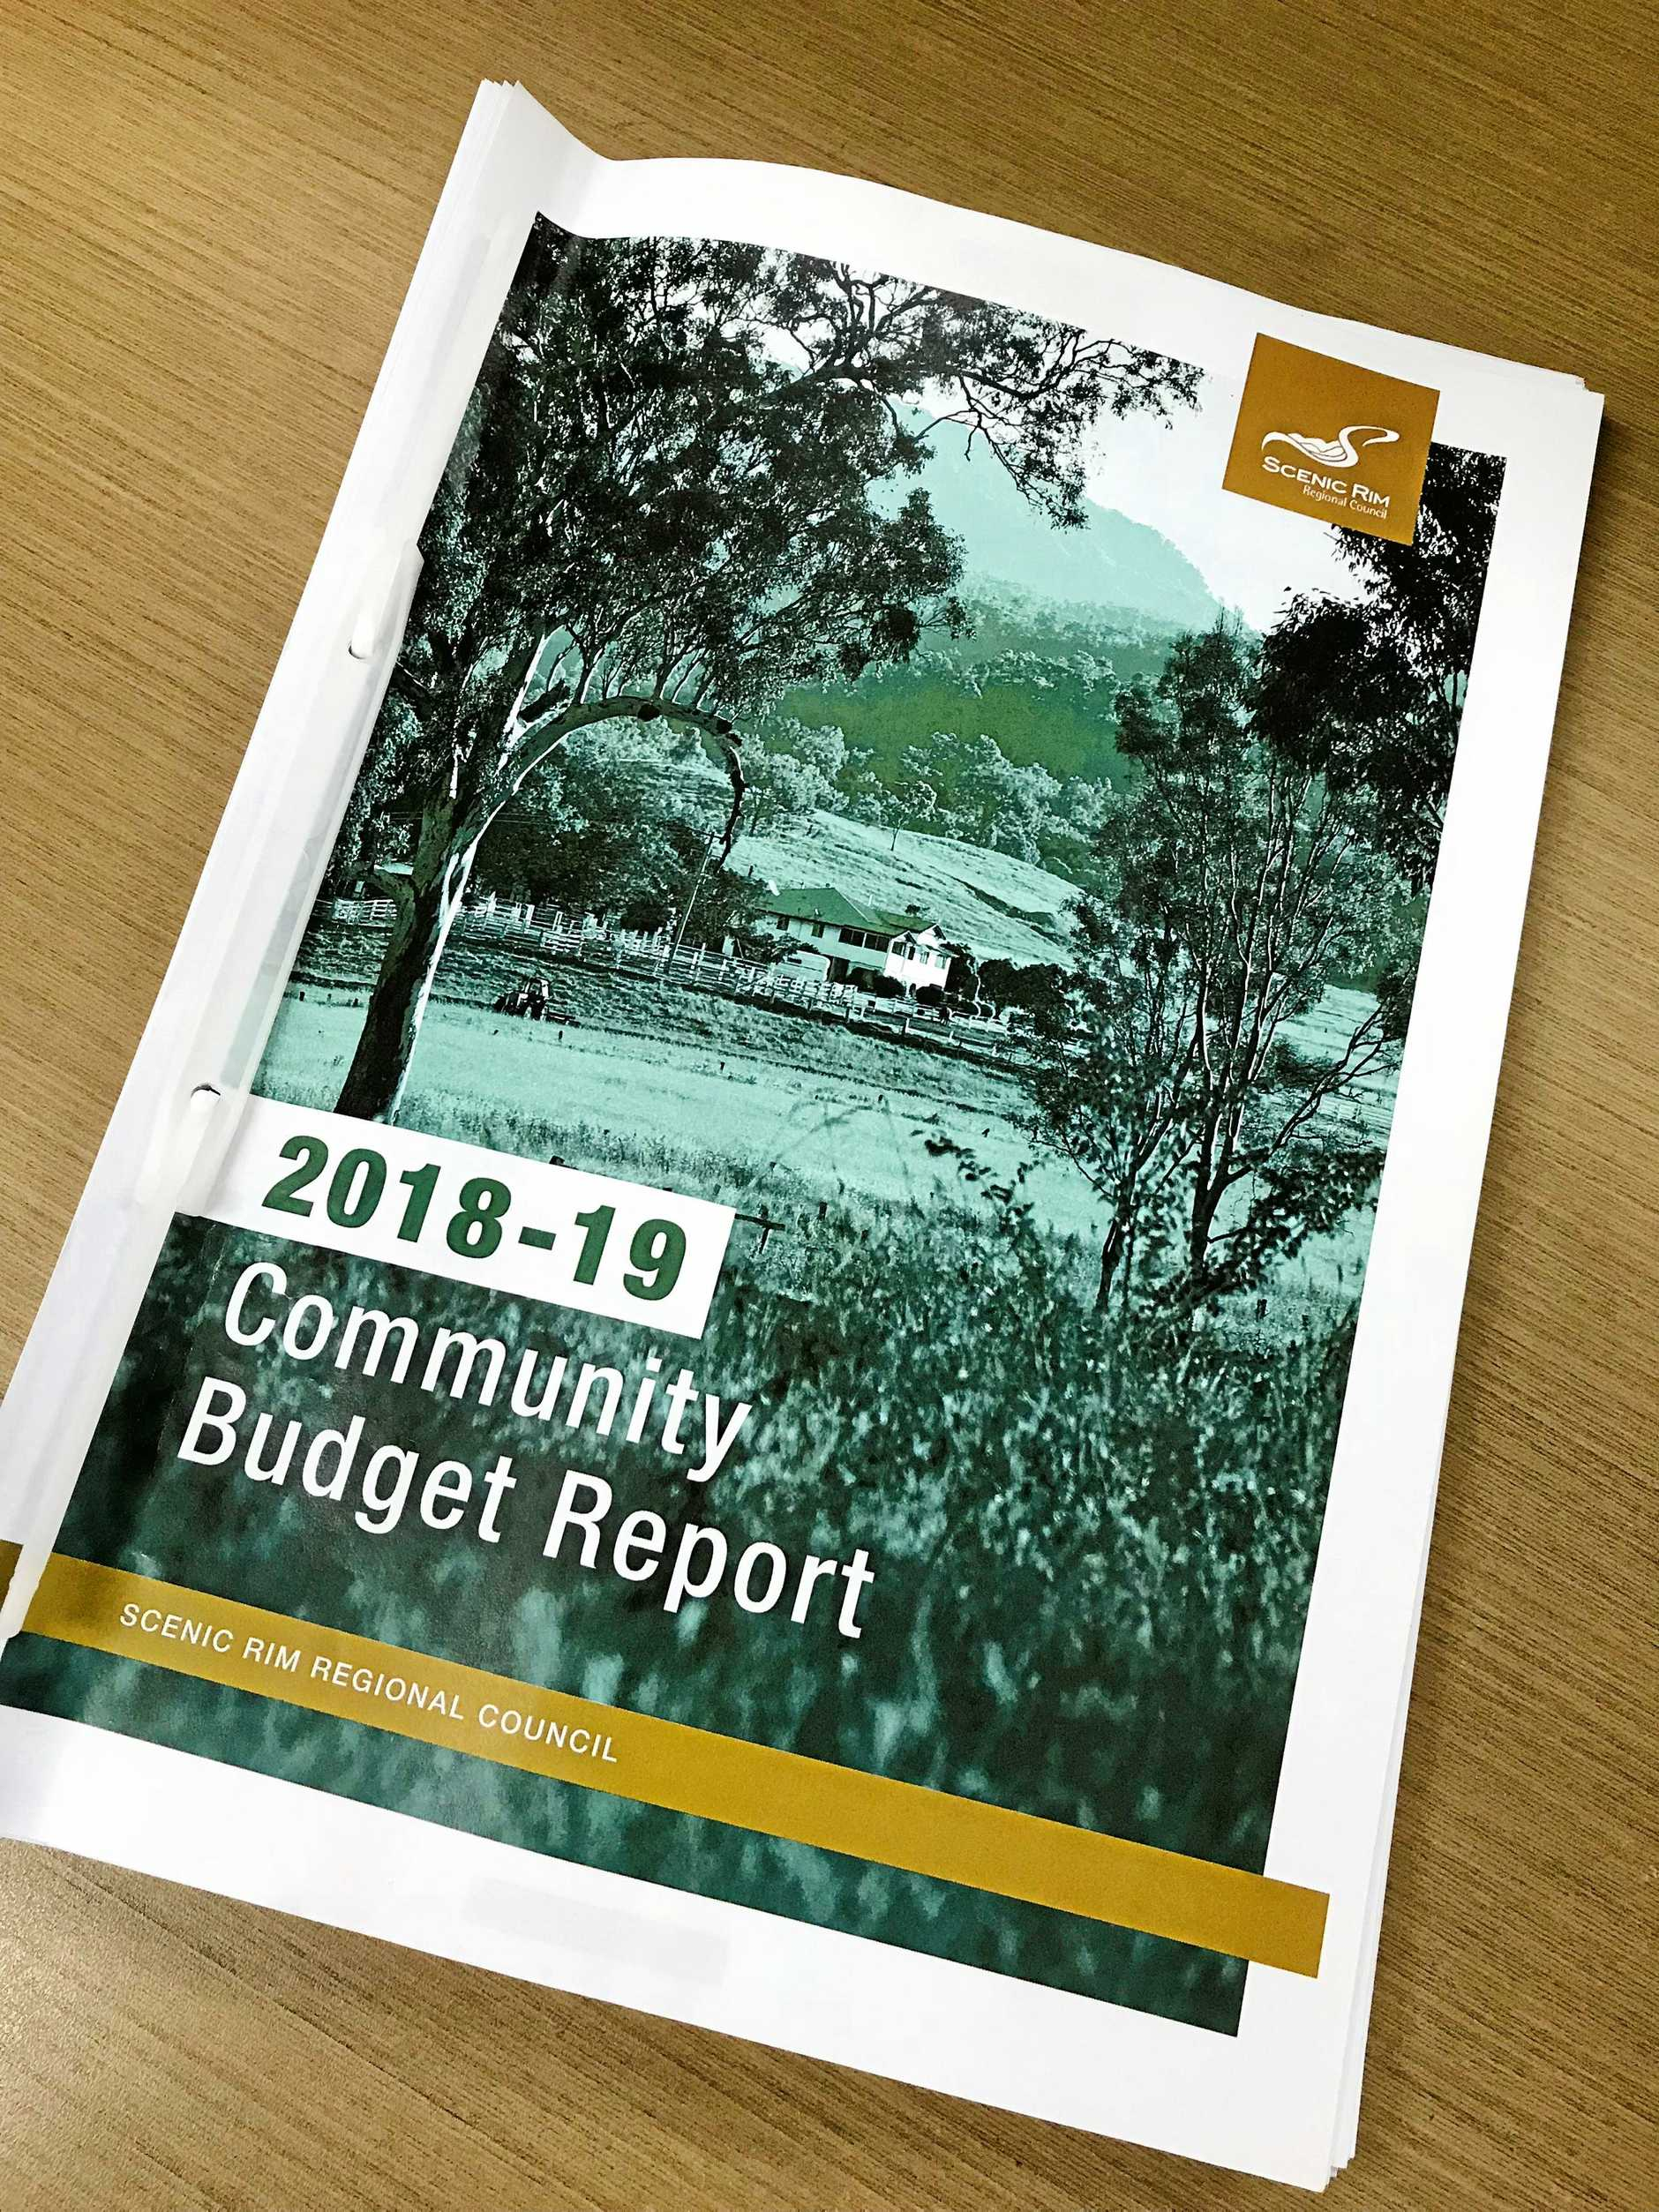 Scenic Rim Regional Council's budget book for 2018-19.